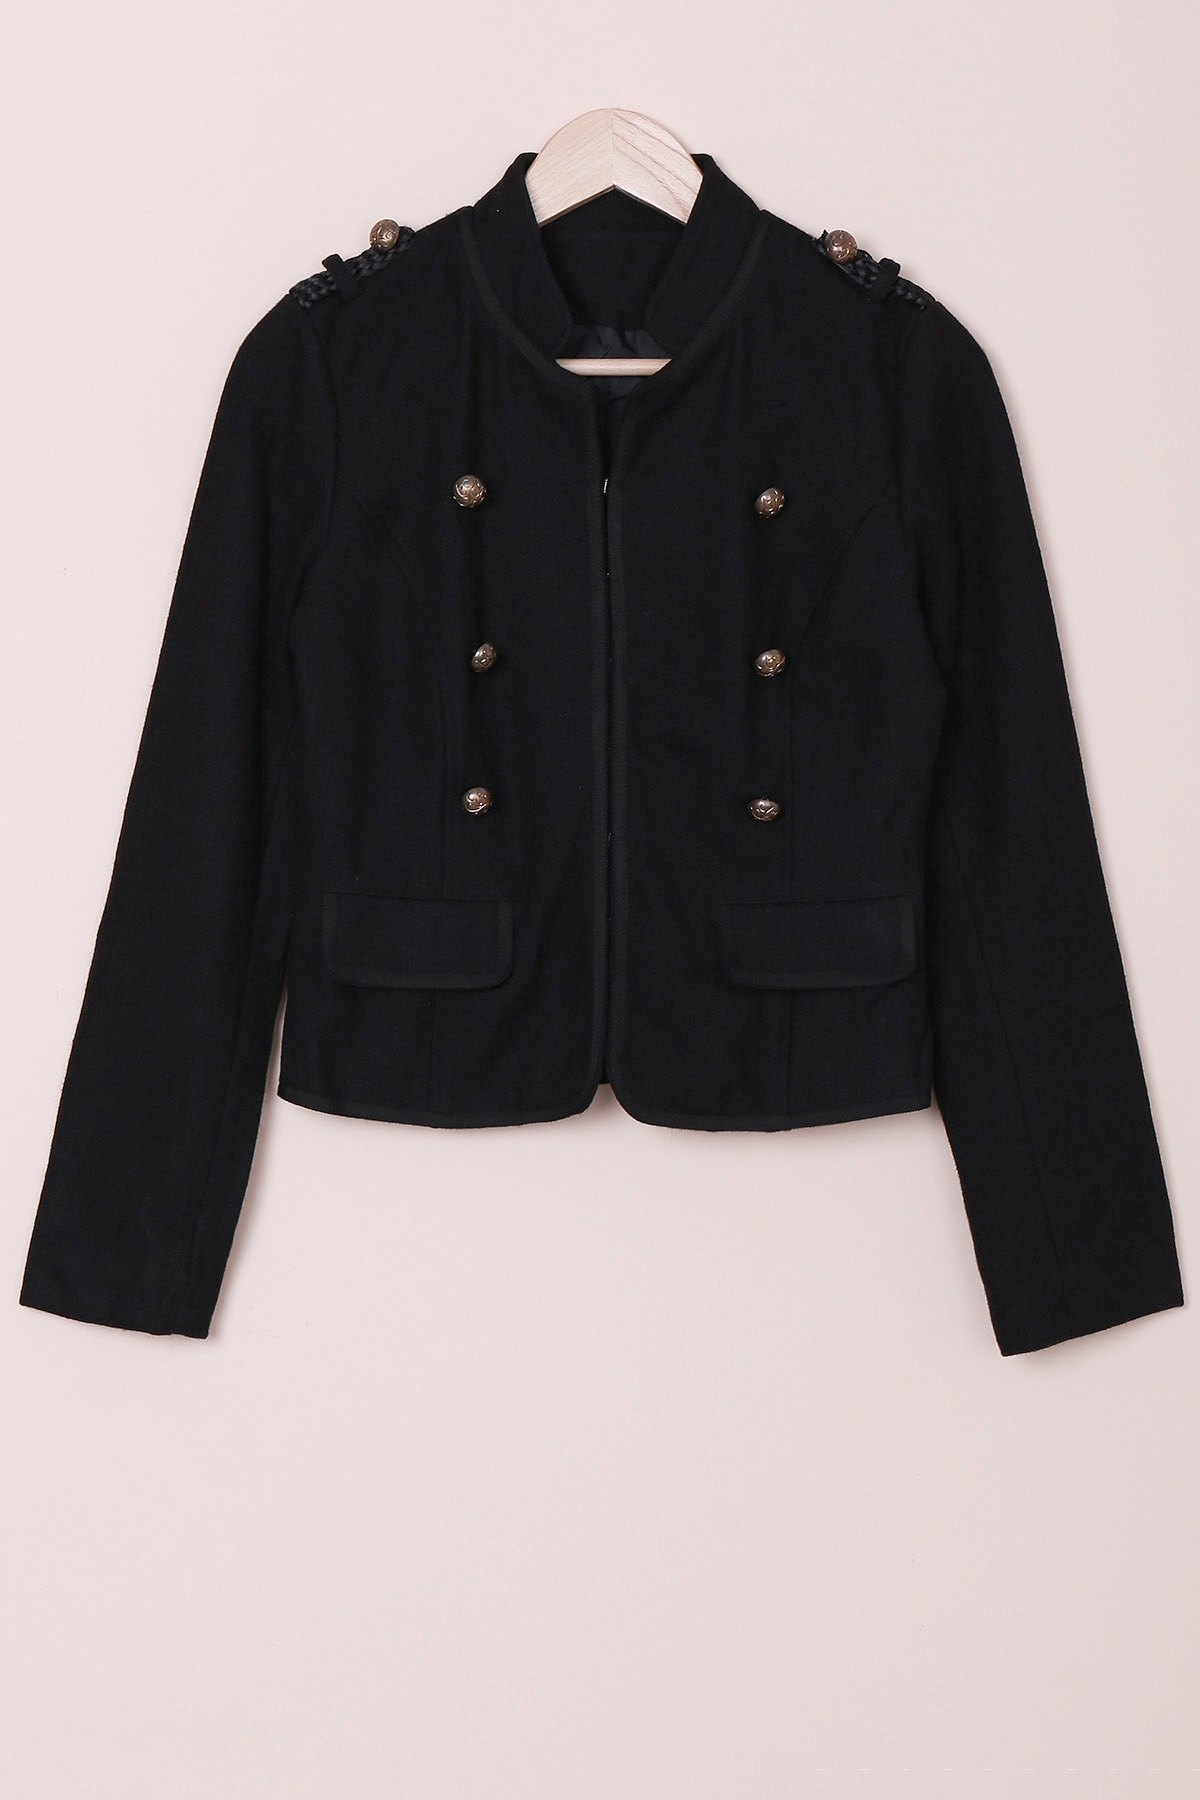 Fashionable Women's Stand Collar Long Sleeves Buttoned Worsted Jacket - BLACK S